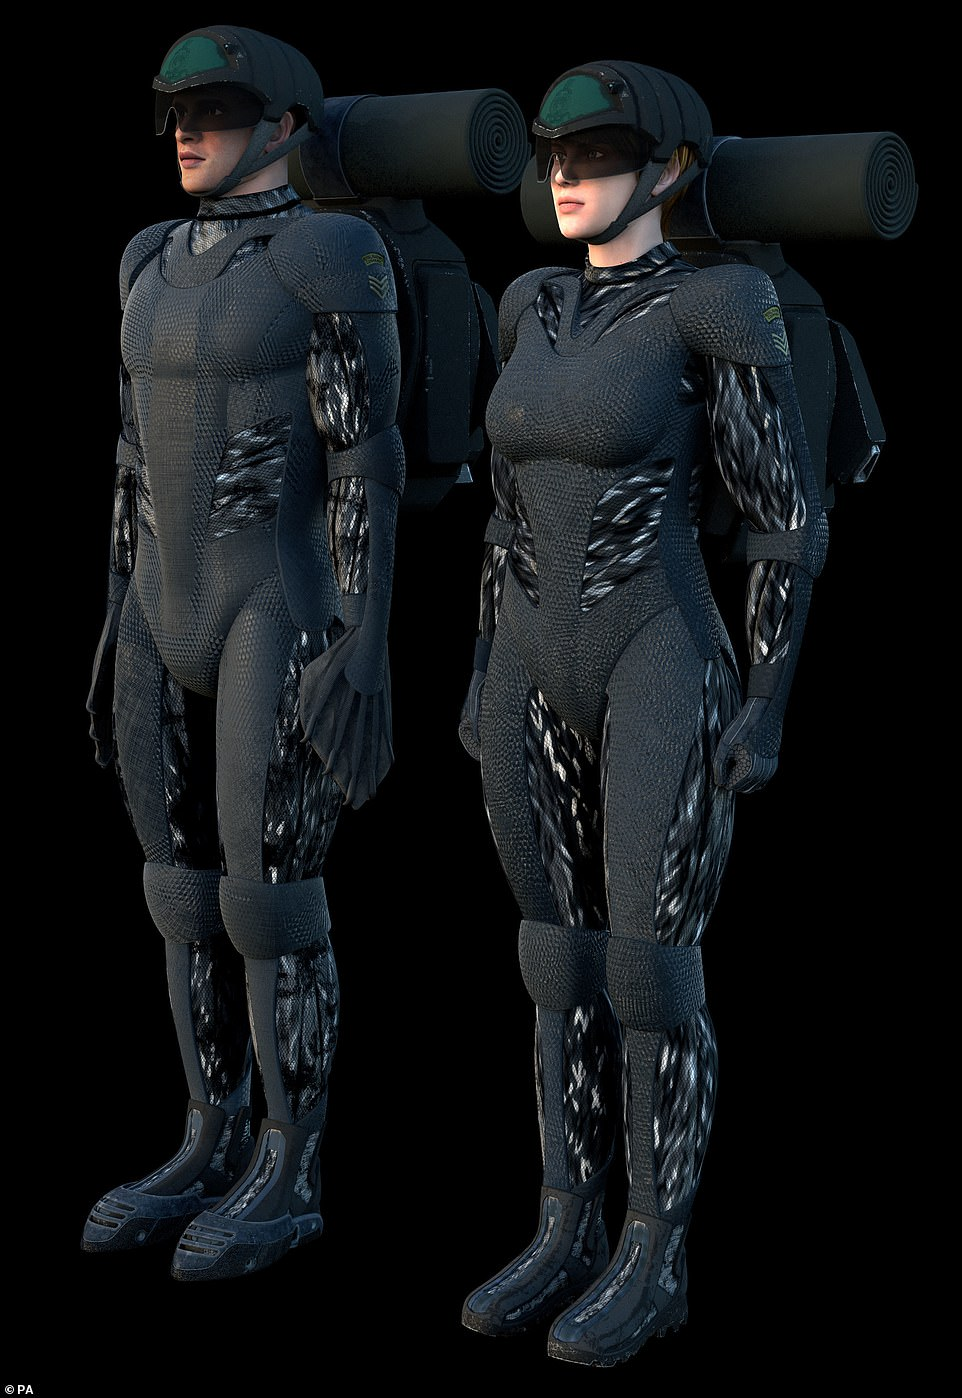 This handout photo from the Royal Navy shows a design concocted by engineer graduates who visited the Commando Training Centre for Royal Marines in Lympstone, England. It shows exo-skeleton suits which would allow the wearer to perform super-human feats like scaling cliffs and blending in with the environment. The slightly shimmering suits above are likened to 'chameleon suits' as they would allow the user to camouflage themselves like a chameleon